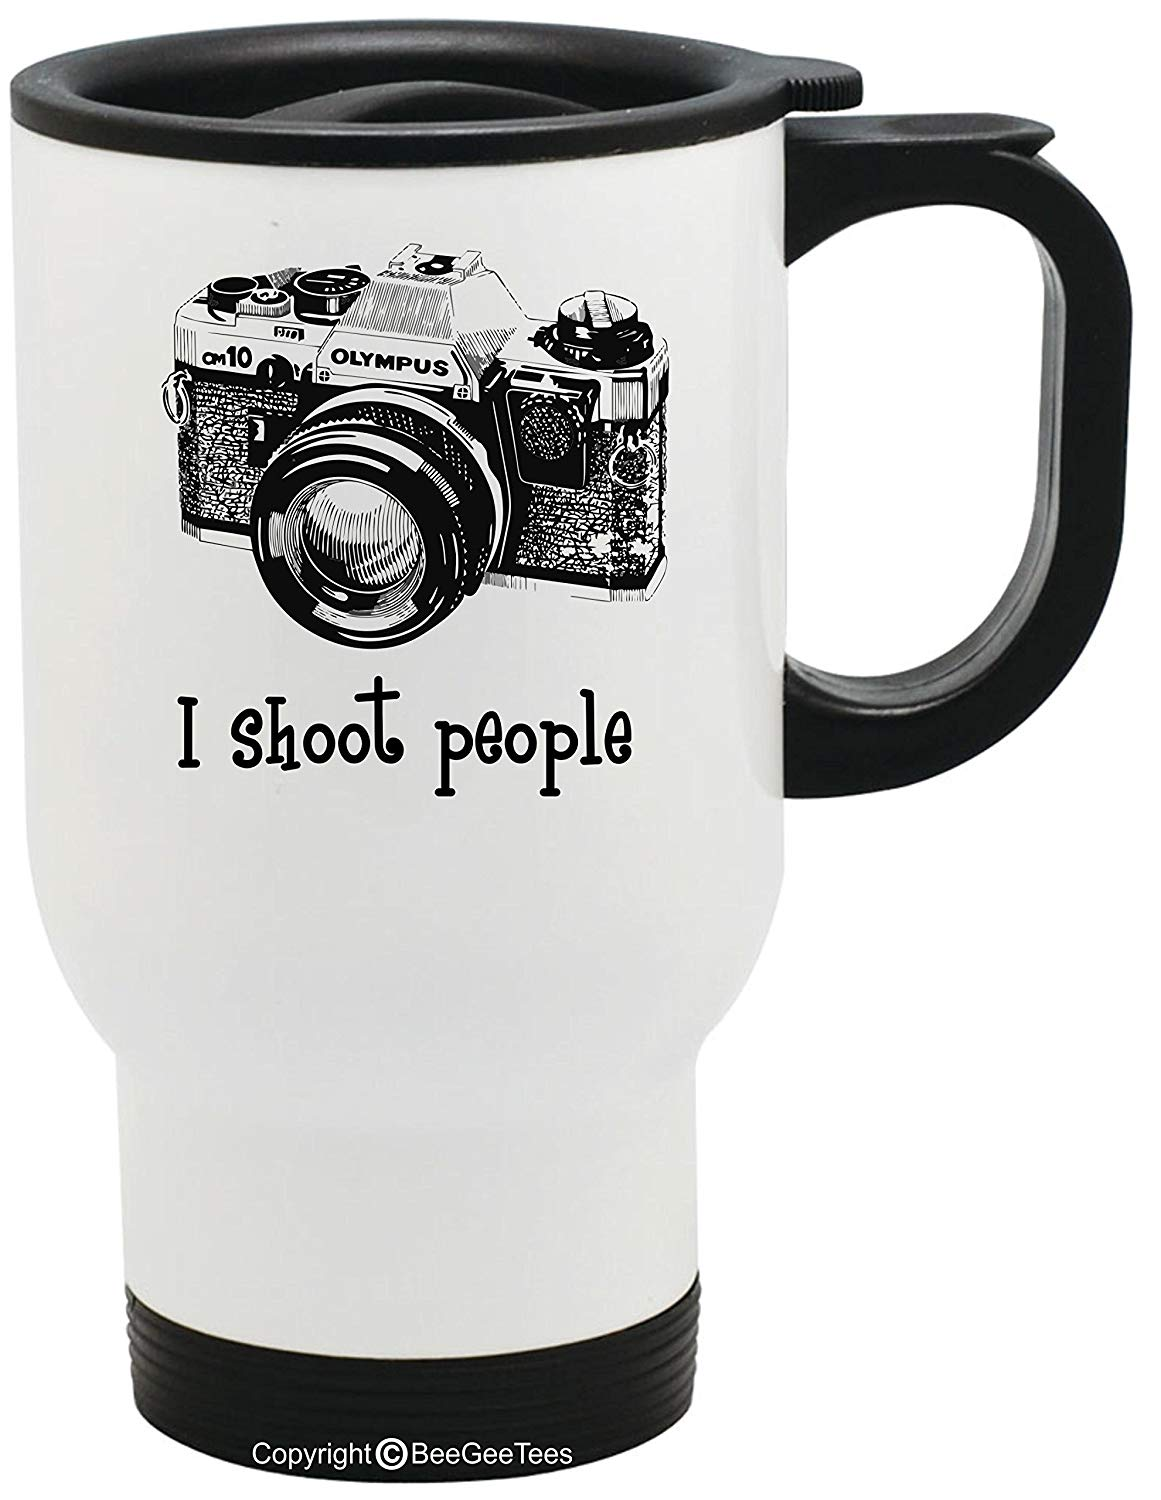 I shoot people Olympus Camera Photography Funny Stainless Steel Photographer Travel Mug by BeeGeeTees (14 oz)